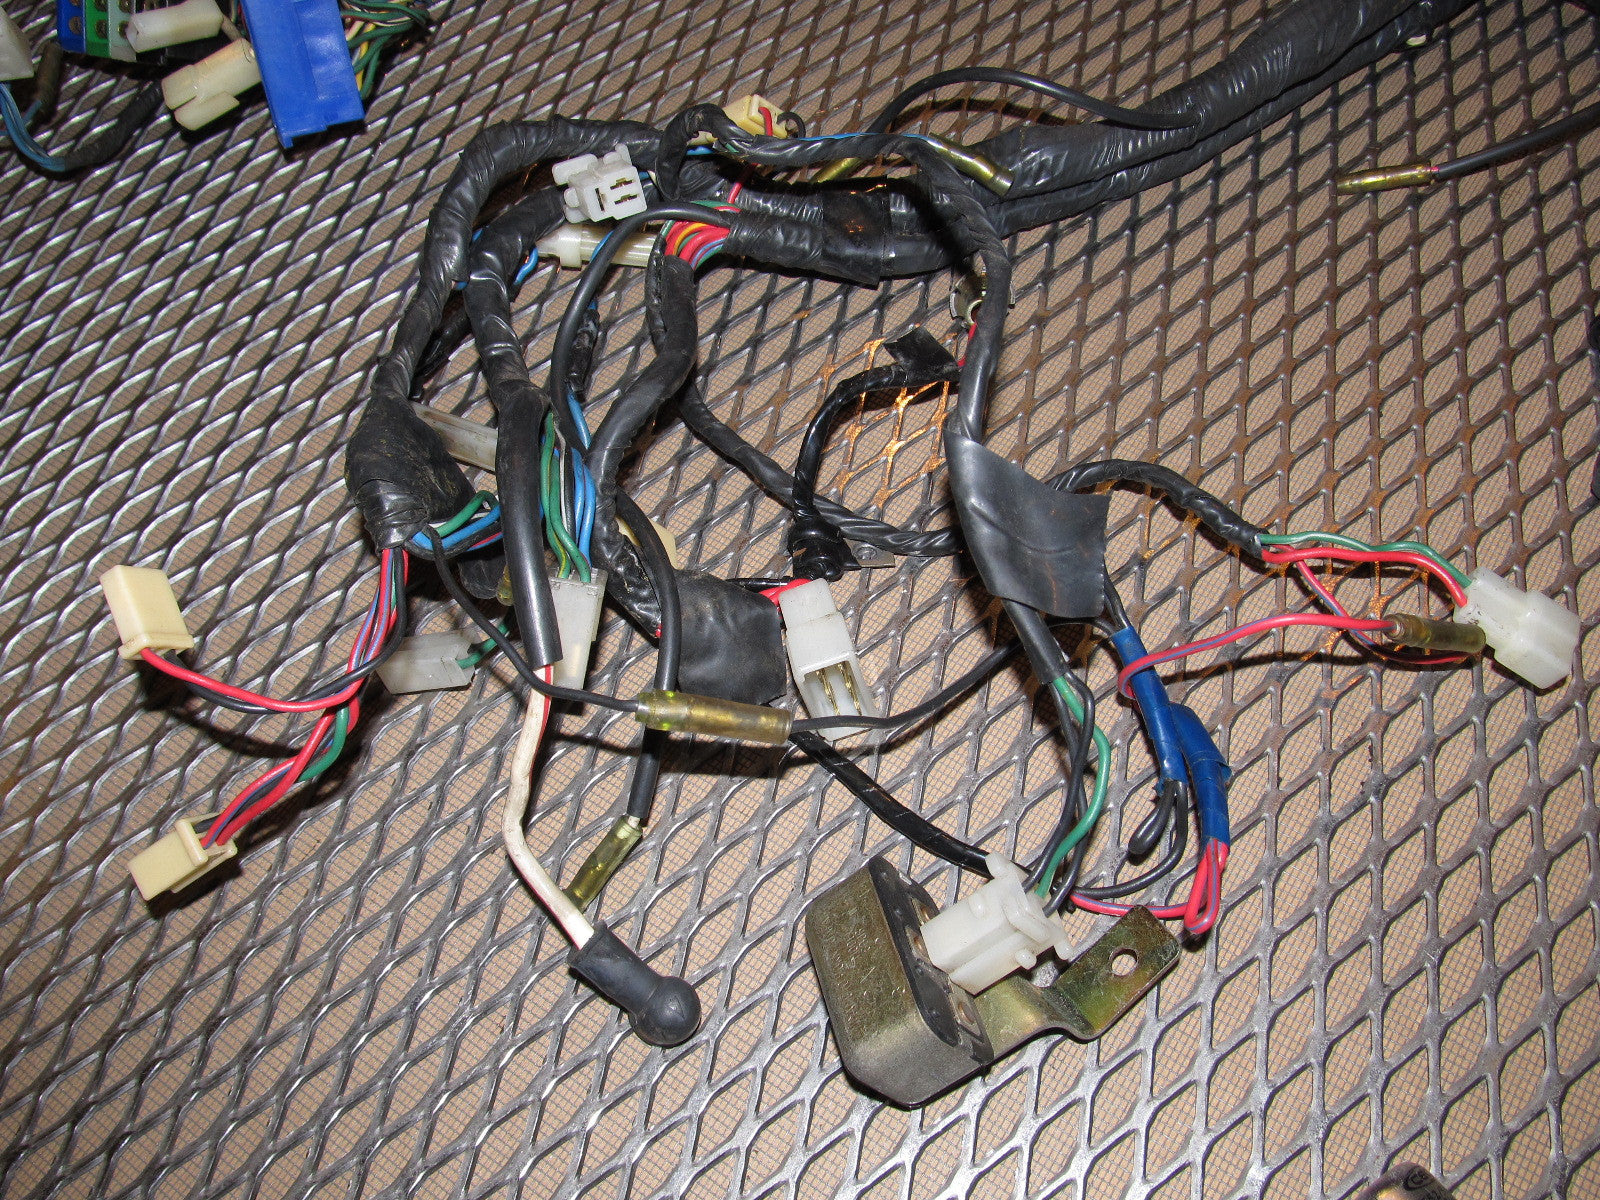 IMG_5228_88526e6a b786 49dc 983b 611c0d77fe05?v=1464826369 72 73 datsun 240z oem dash wiring harness autopartone com  at crackthecode.co